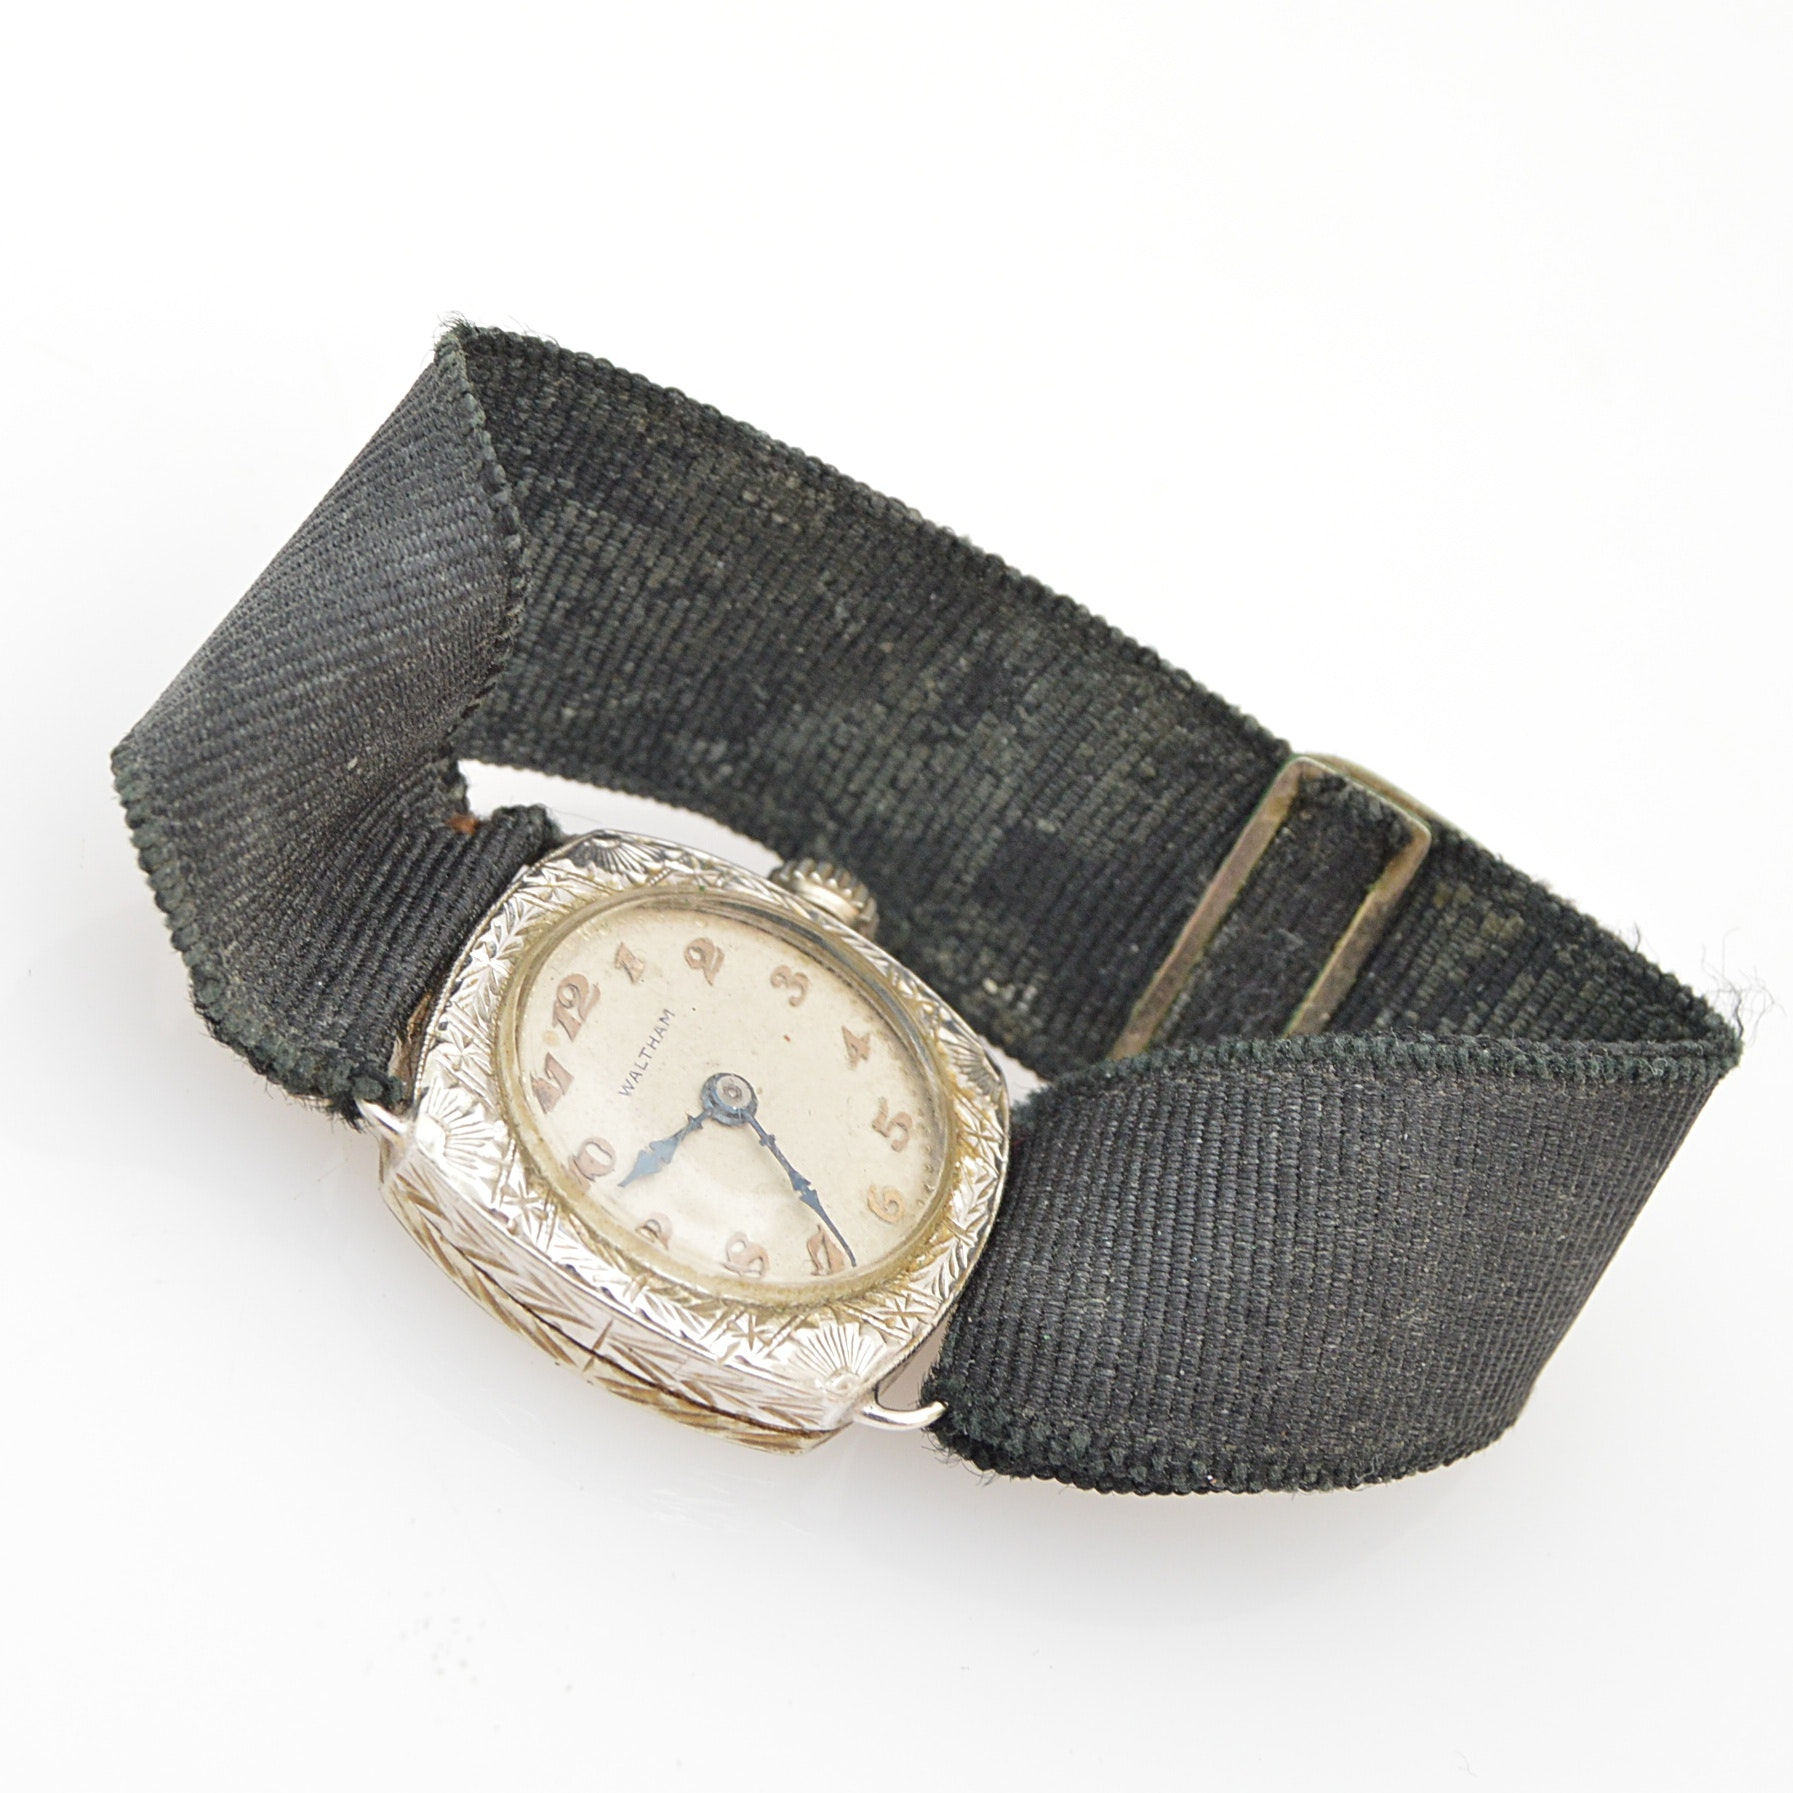 Antique Waltham 14K White Gold Wristwatch with Ribbon Band